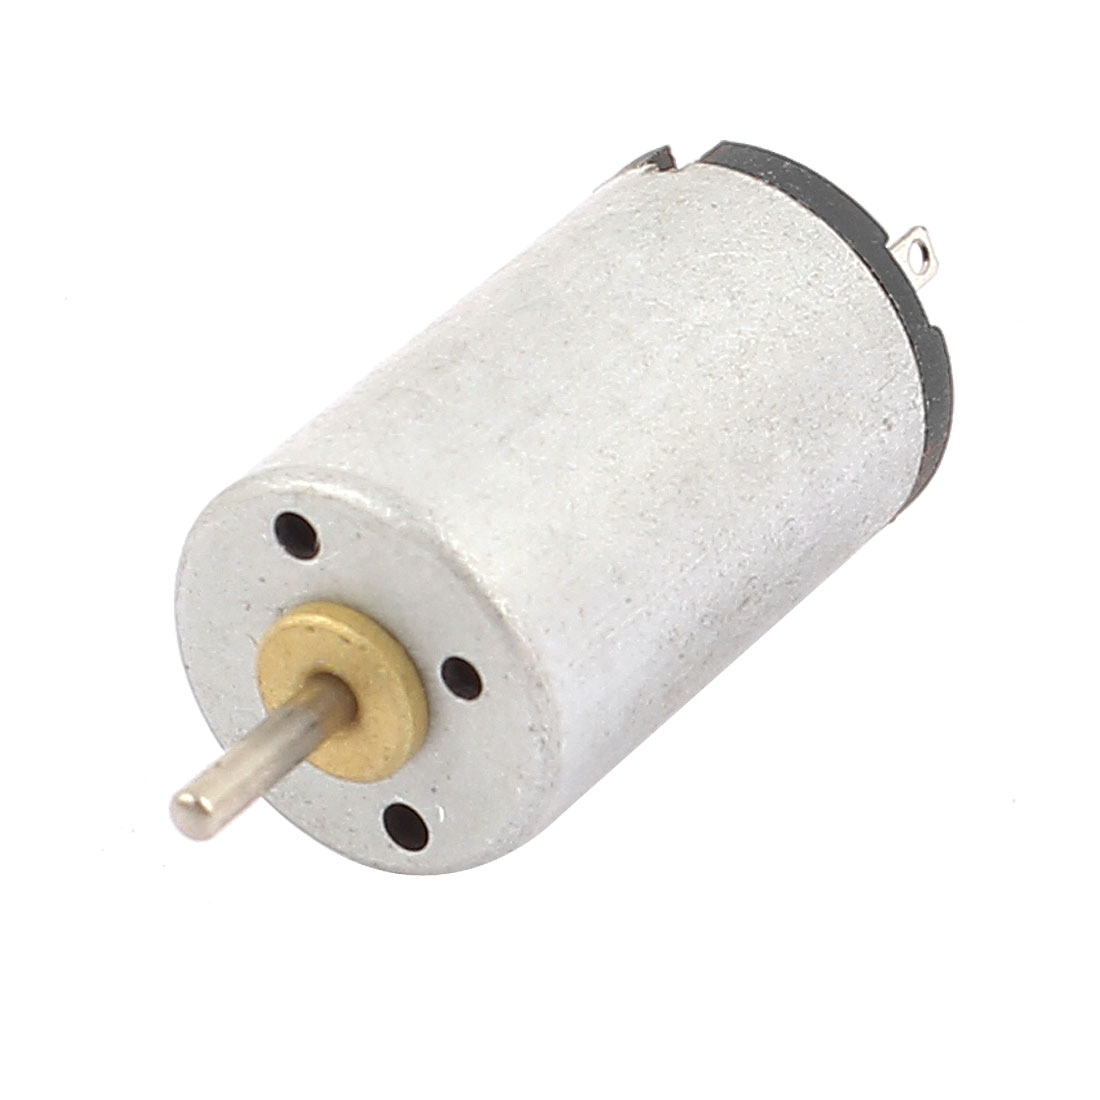 DC 3-6V 20000RPM Electrical Mini Motor 12x20mm for RC Model Toys DIY